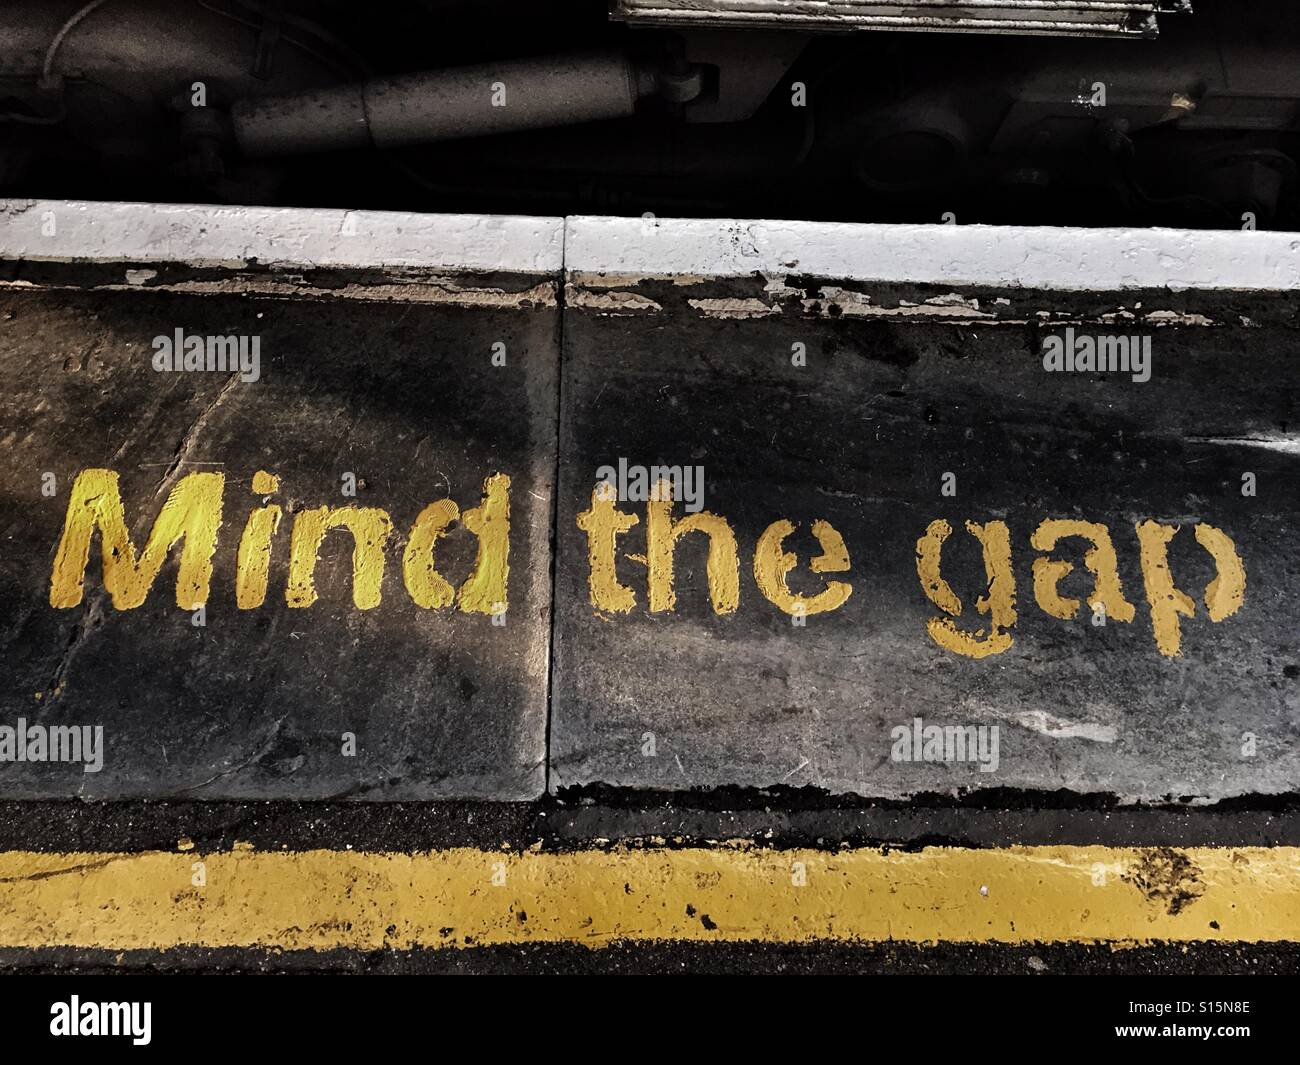 Mind the gap - Stock Image